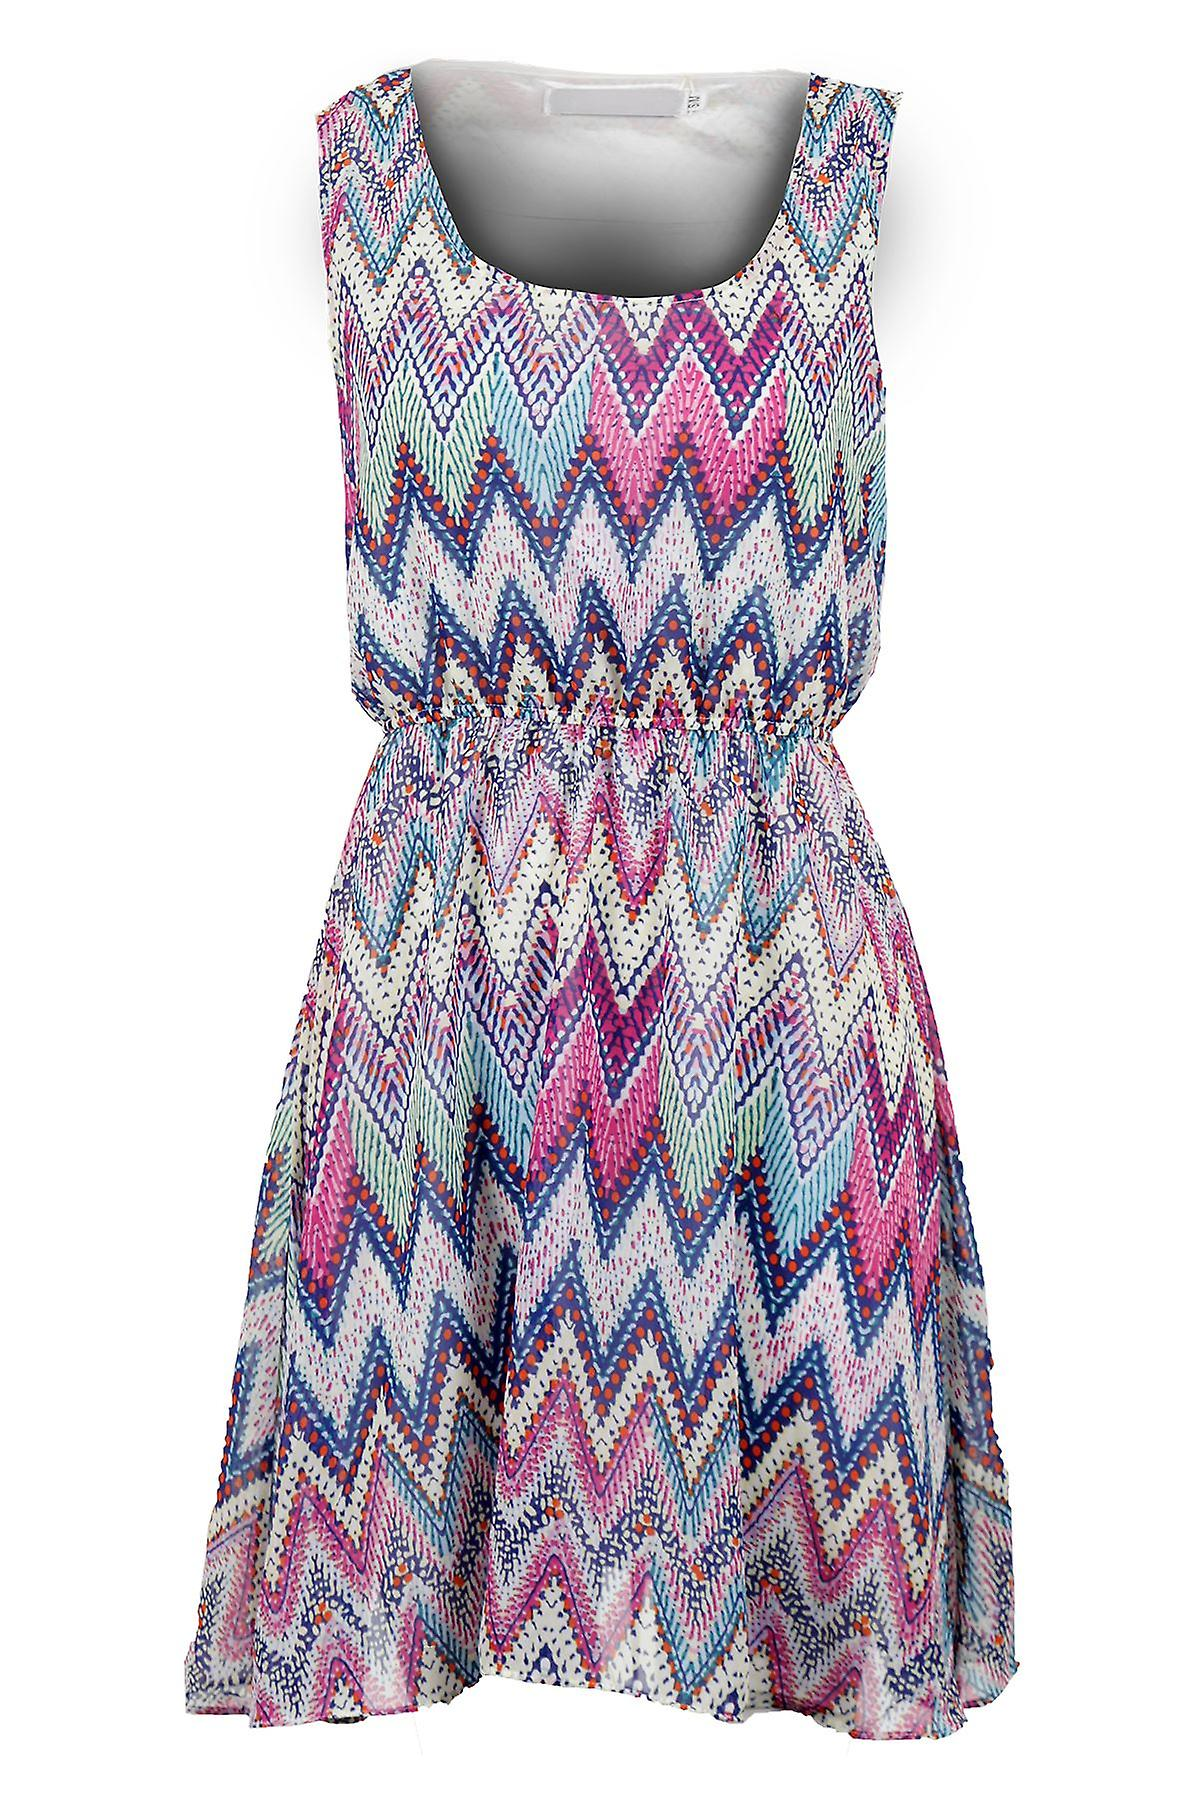 Ladies Sleeveless Zigzag Print Chiffon Tie Back Lined Skater Women's Short Dress